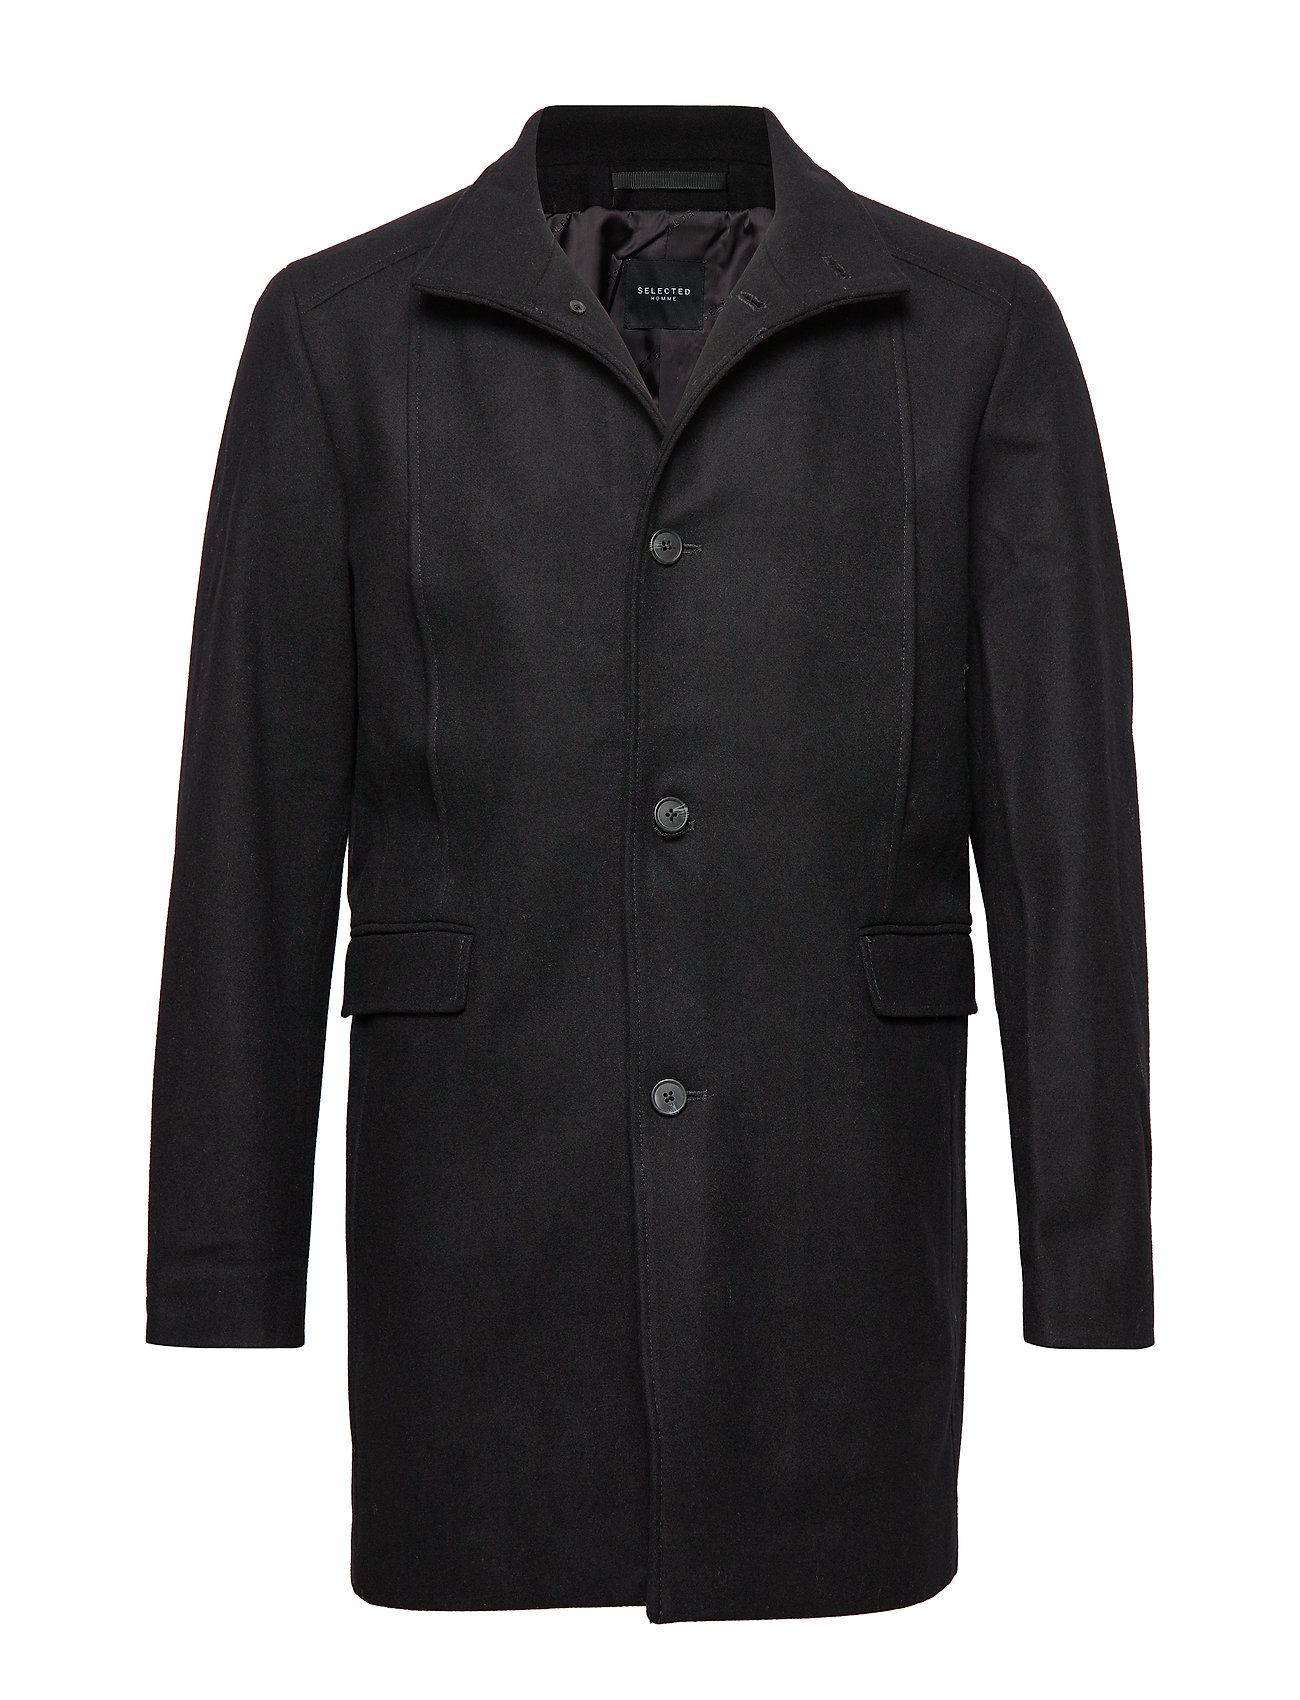 Selected Homme SLHMOSTO WOOL COAT B NOOS - BLACK